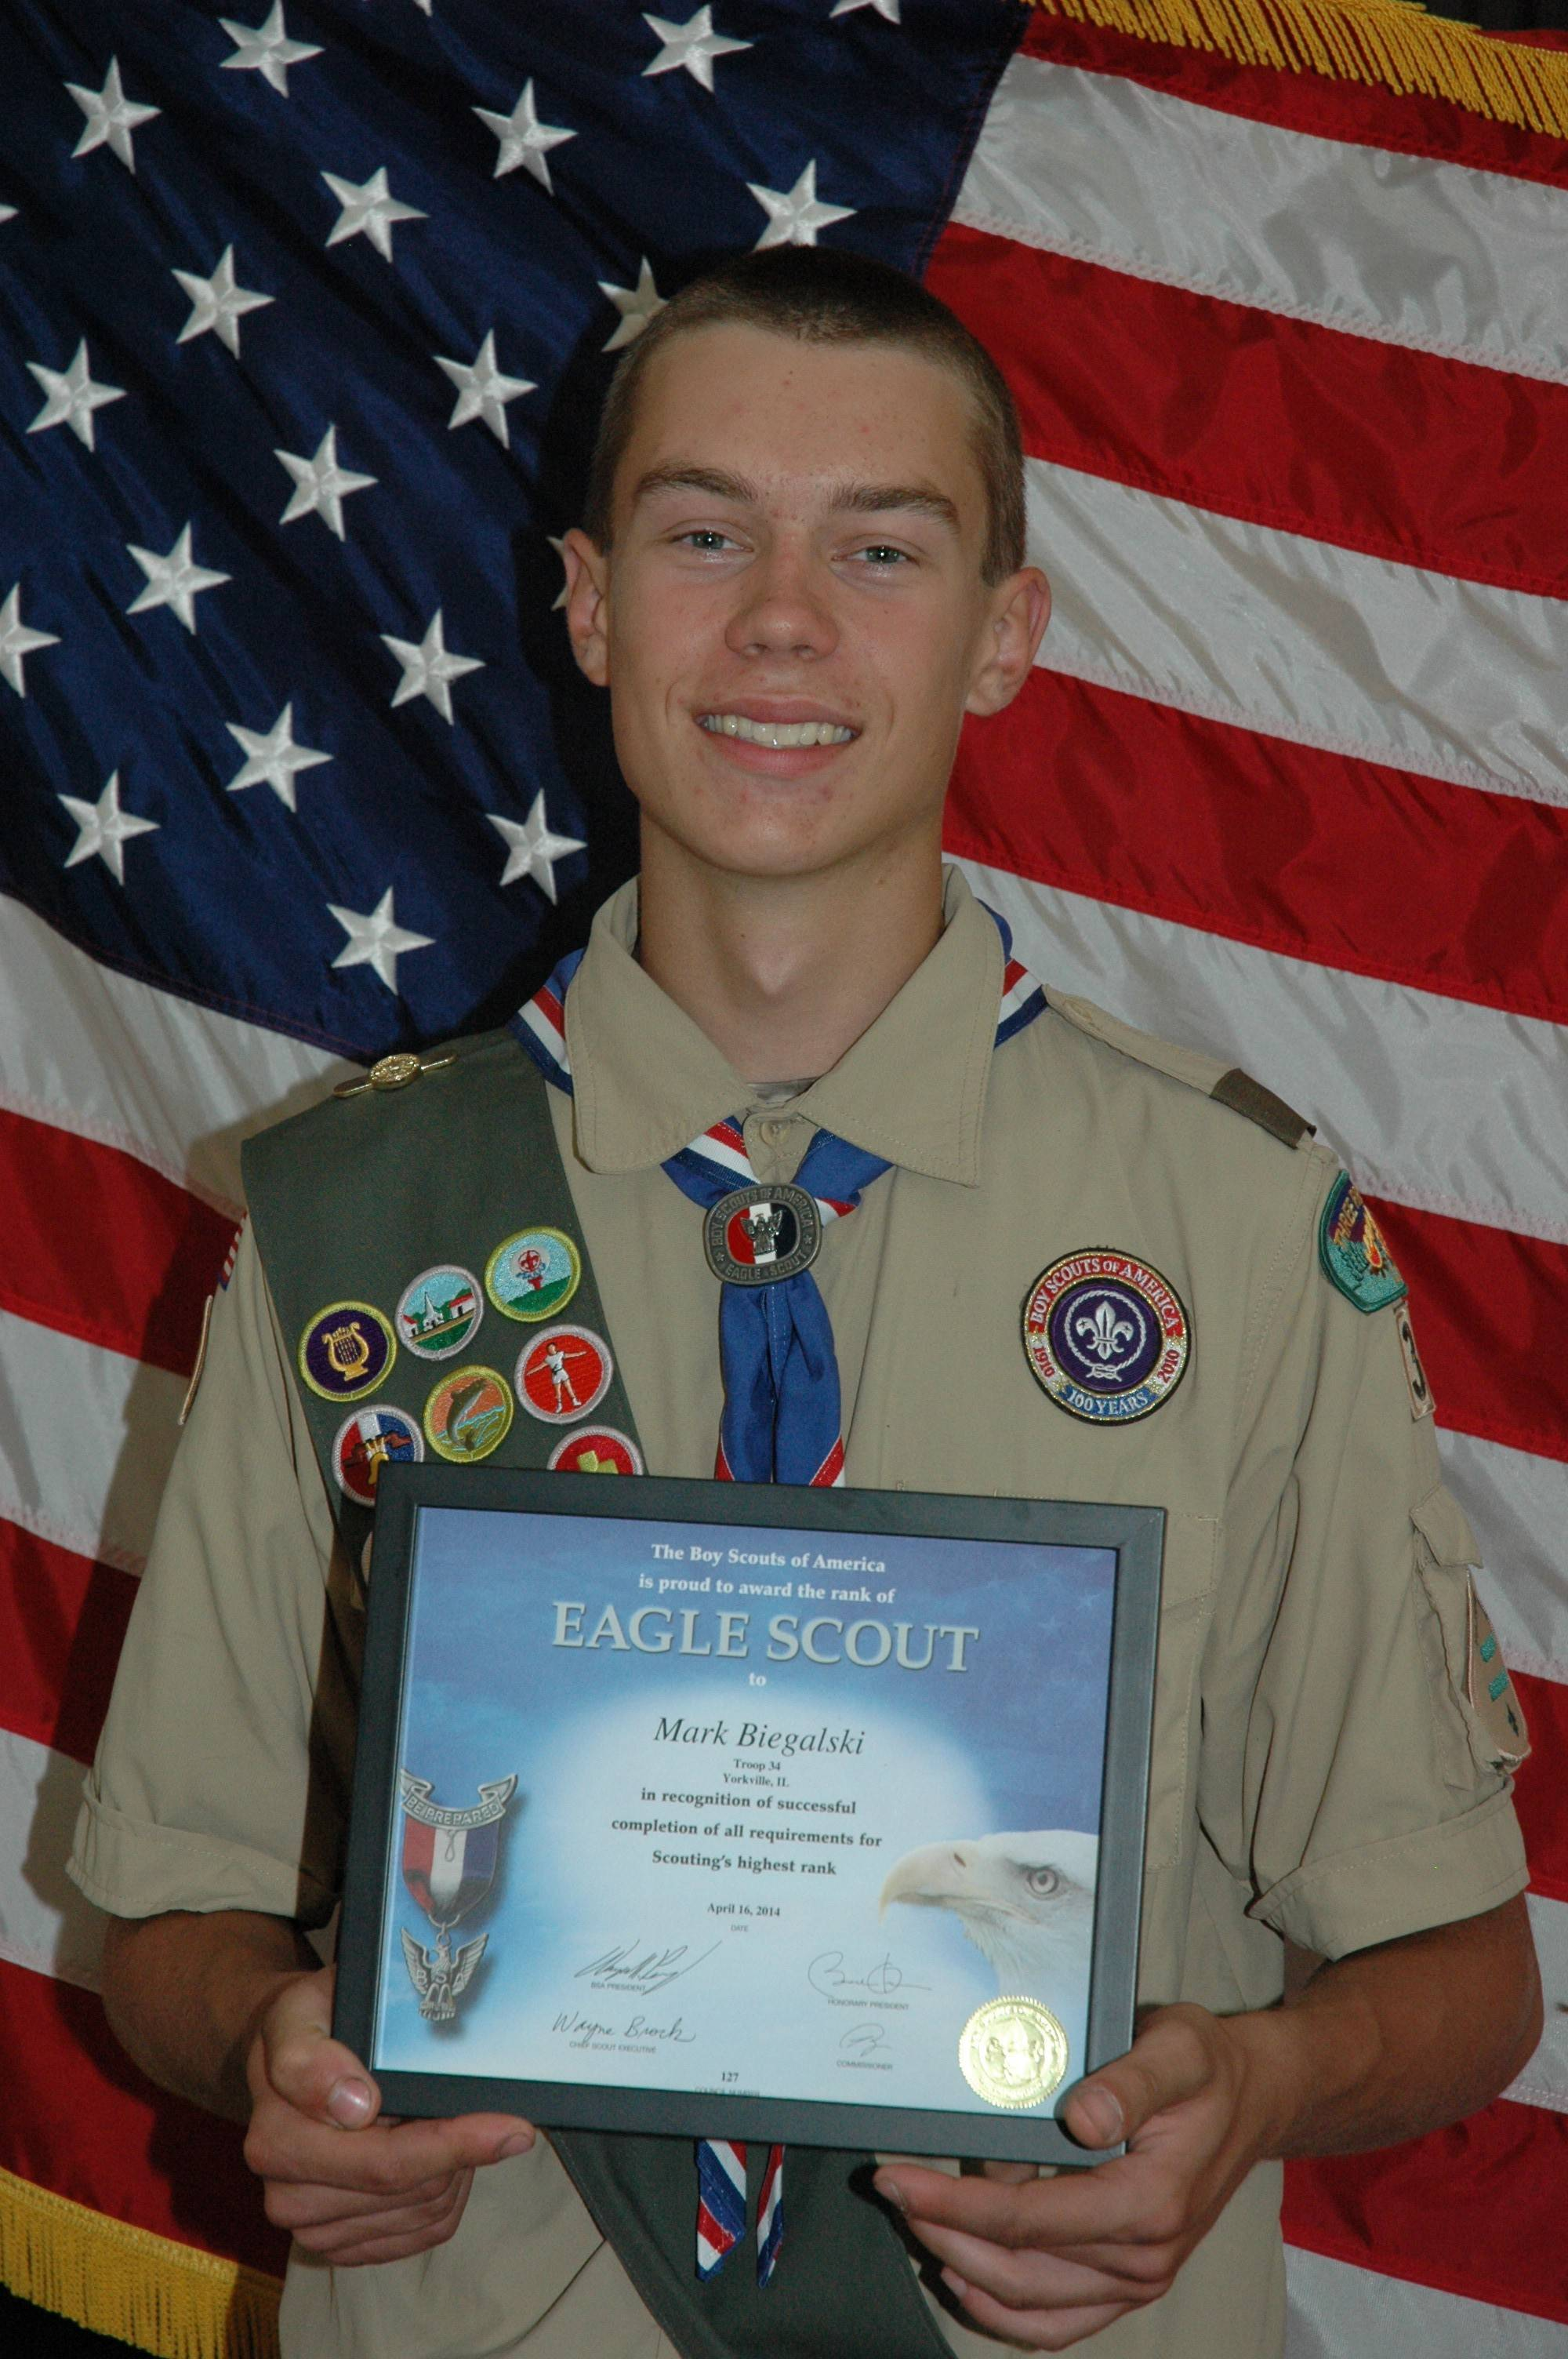 Eagle Scout Mark Biegalski